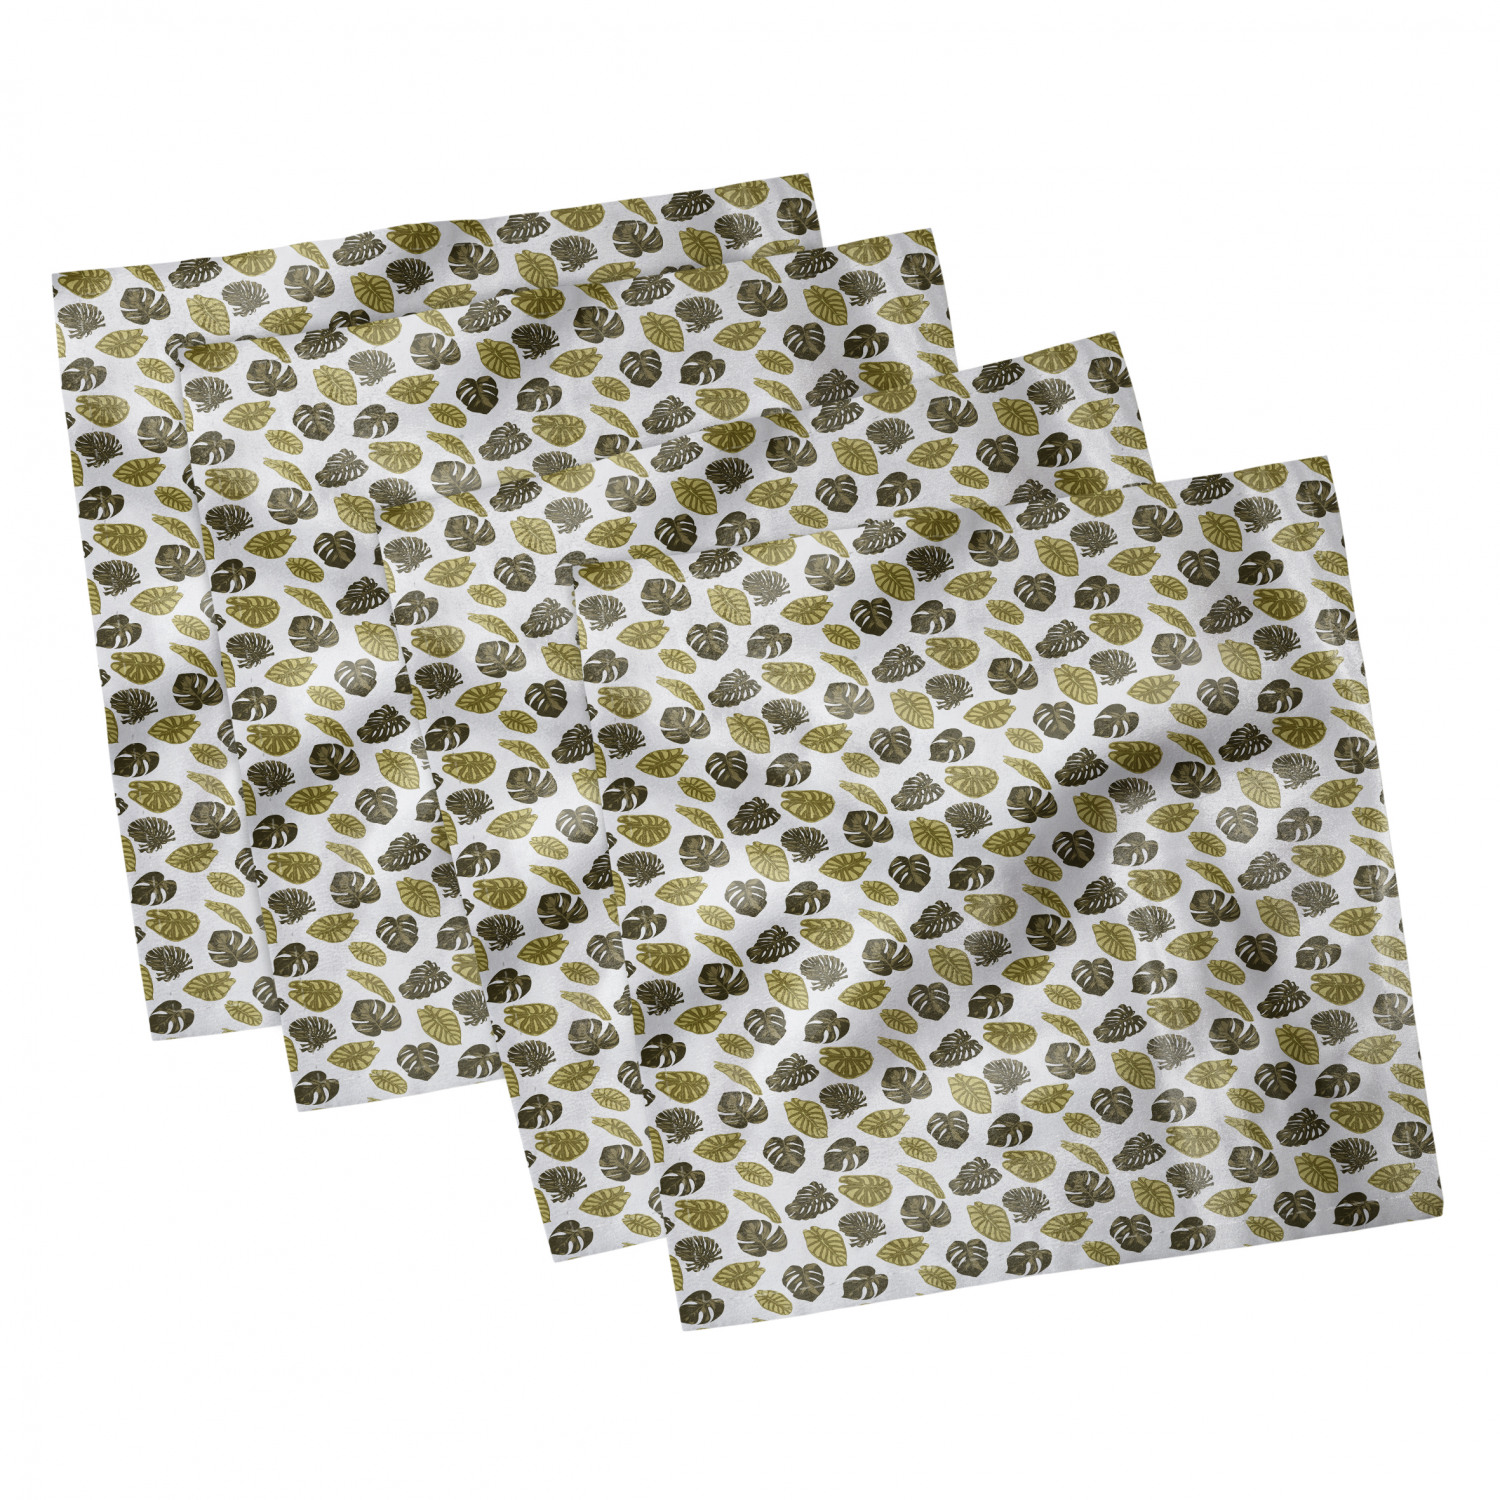 thumbnail 71 - Ambesonne-Leaves-Forest-Decorative-Satin-Napkins-Set-of-4-Party-Dinner-Fabric